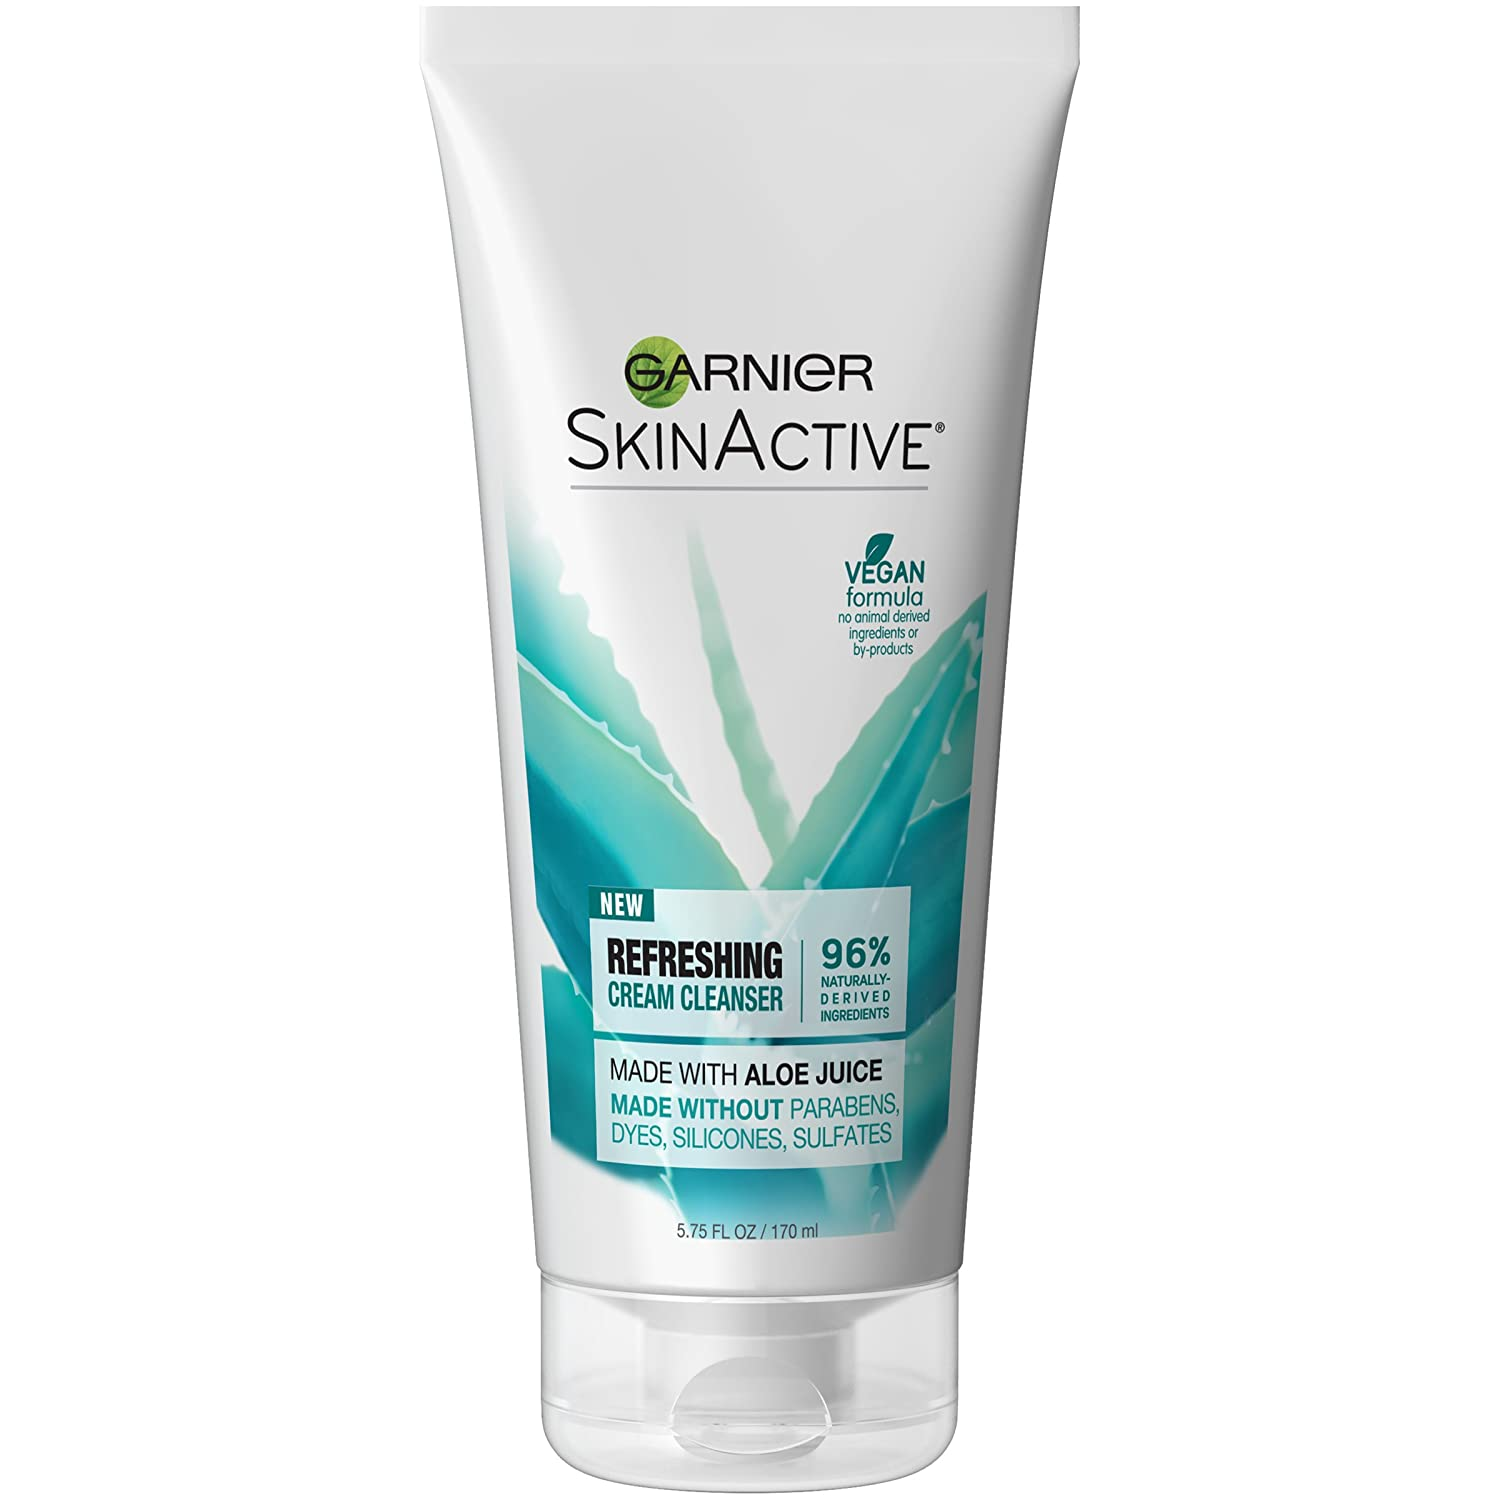 Garnier SkinActive Cream Face Wash with Aloe Juice, Dry Skin,5.75 fl. oz.